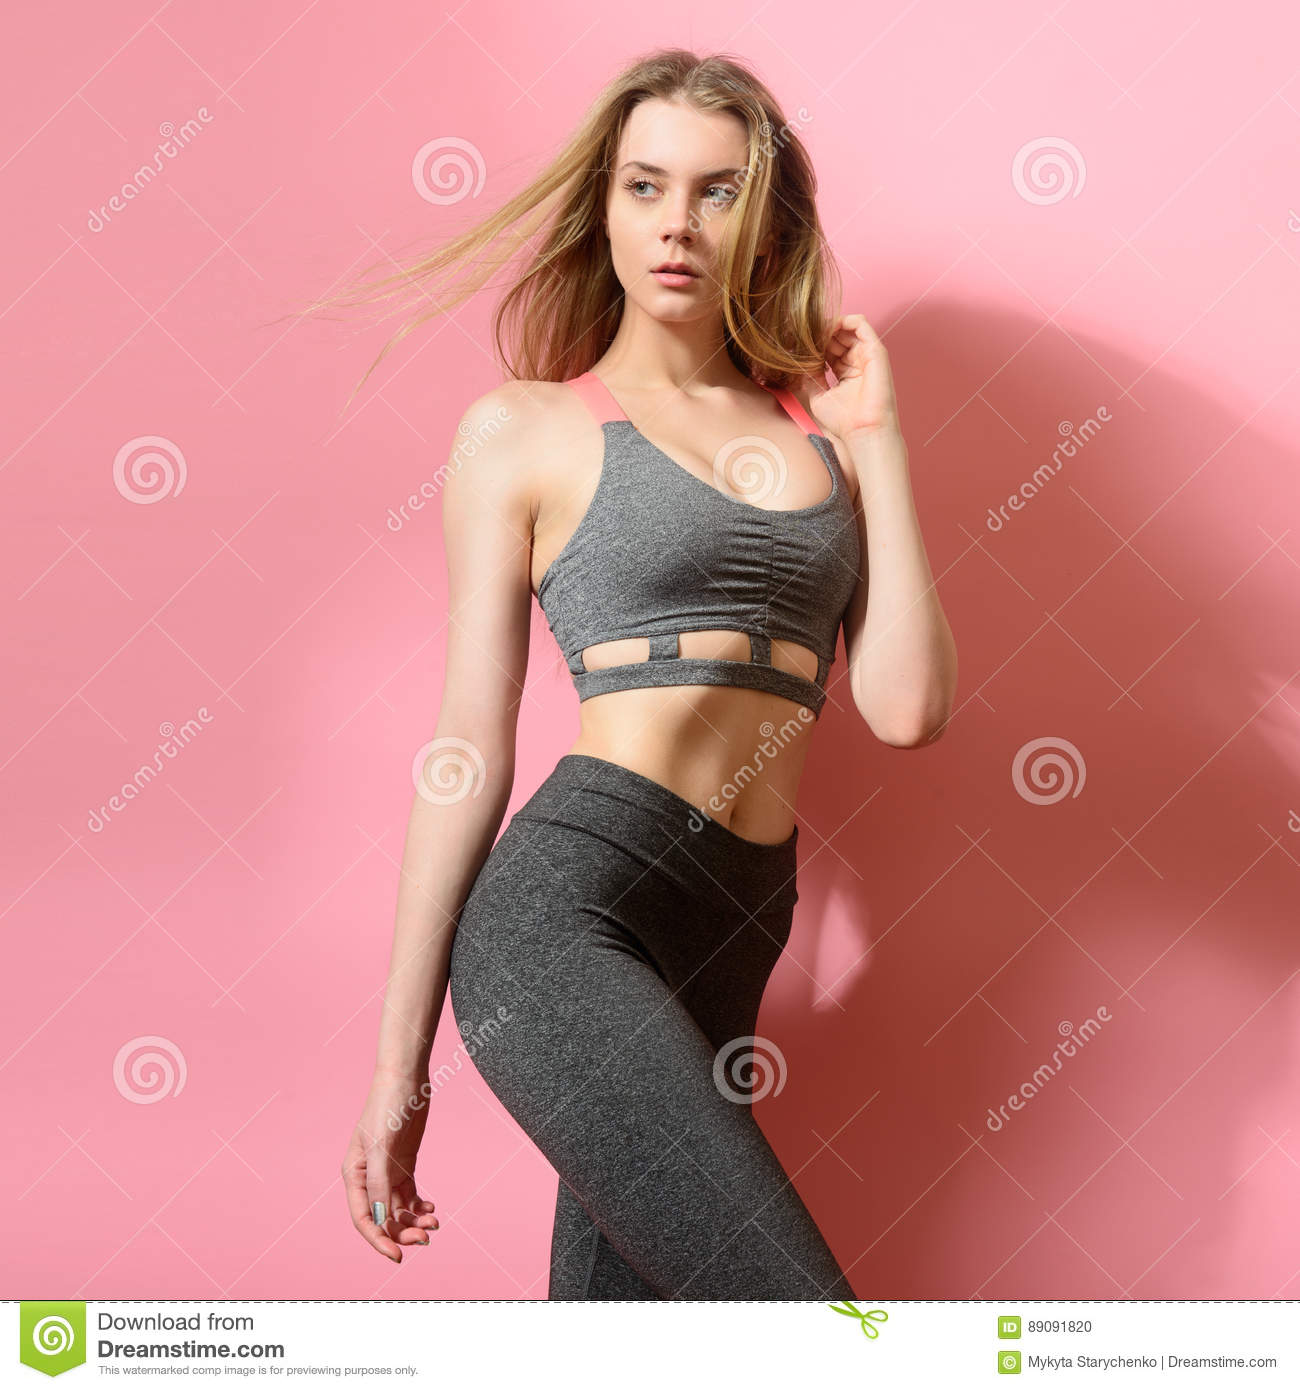 Beautiful fitness model girl posing wearing sport clothes.